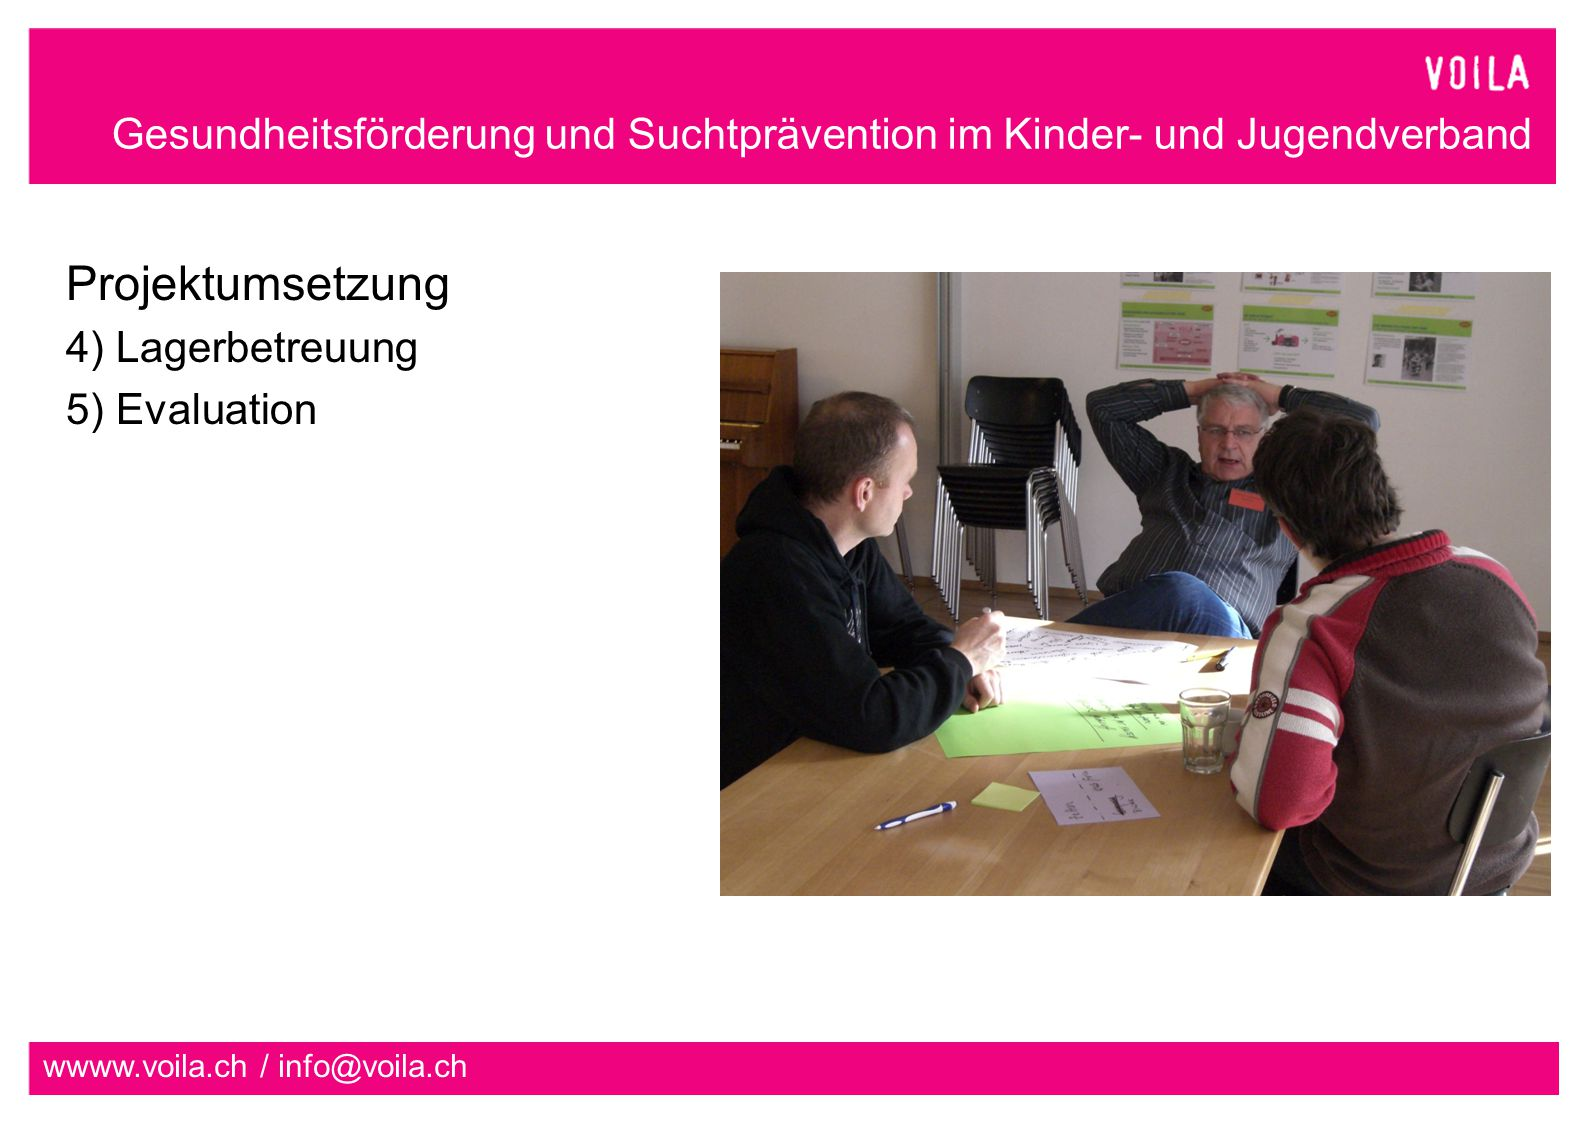 Projektumsetzung 4) Lagerbetreuung 5) Evaluation